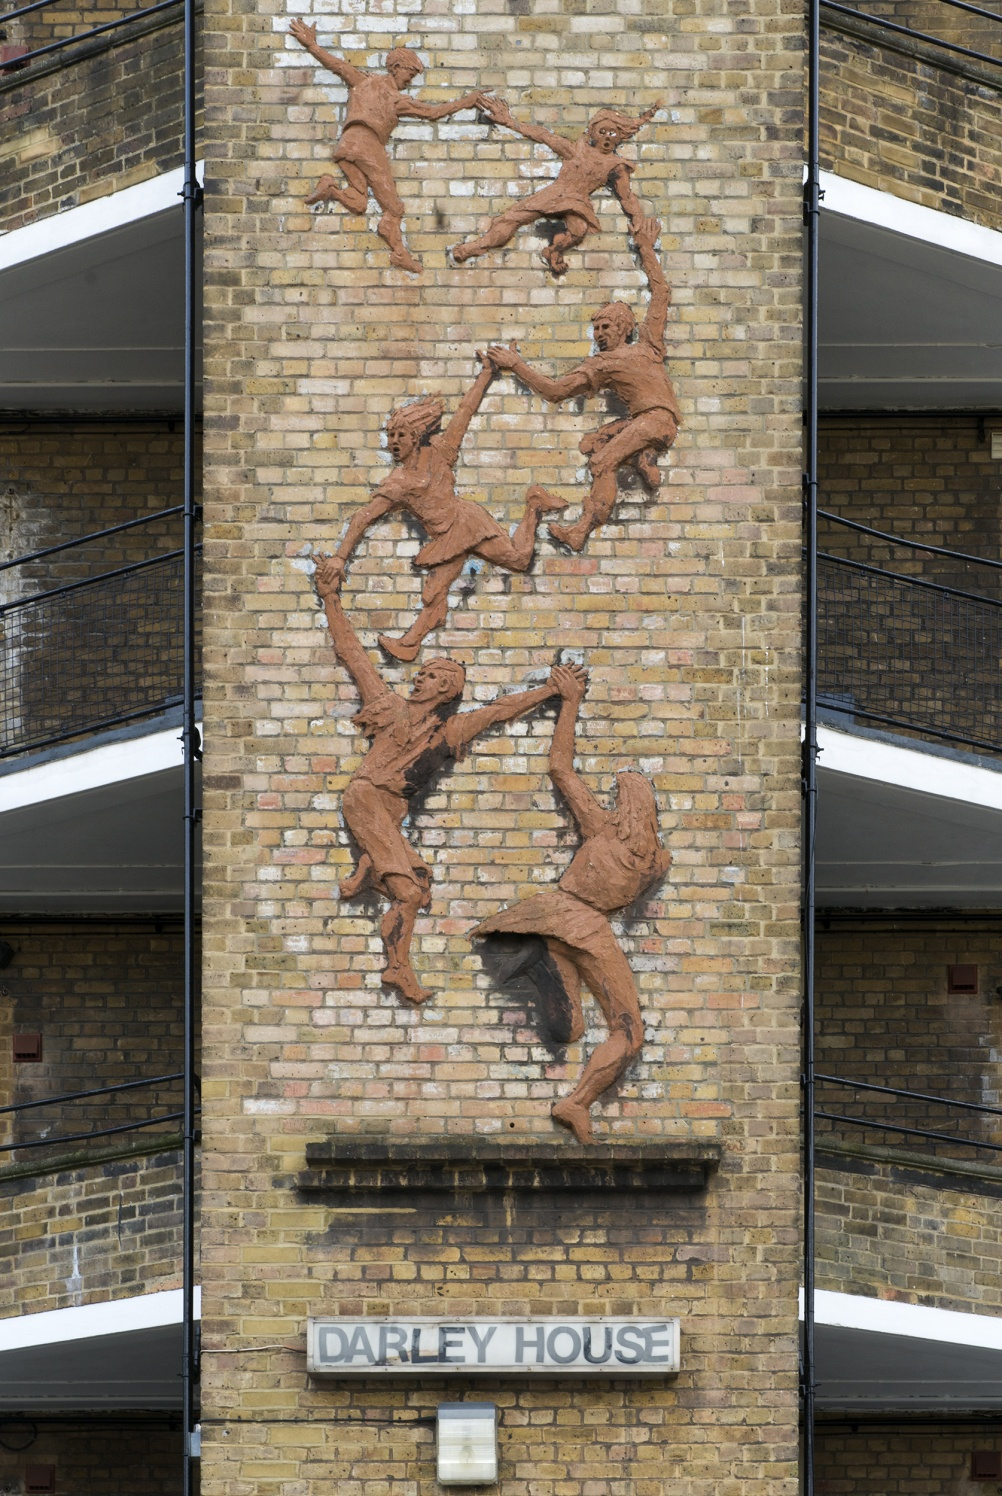 Following the Leader (Memorial to the Children Killed in the Blitz) by Peter Laszlo Peri, Vauxhall, London, 1949. Listed Grade II A poignant dedication to the children who lost their lives in the Blitz, this sculpture is an early example of the Hungarian artist Peri's work and one of three unusually commissioned for social housing estates in South Lambeth by London County Council (LCC). The cascading figures of children holding hands are cast in coloured concrete- an innovation which Peri was known for. He is an underrated artist who intended for his pieces to brighten up the environment of the people who lived beside them. © Historic England